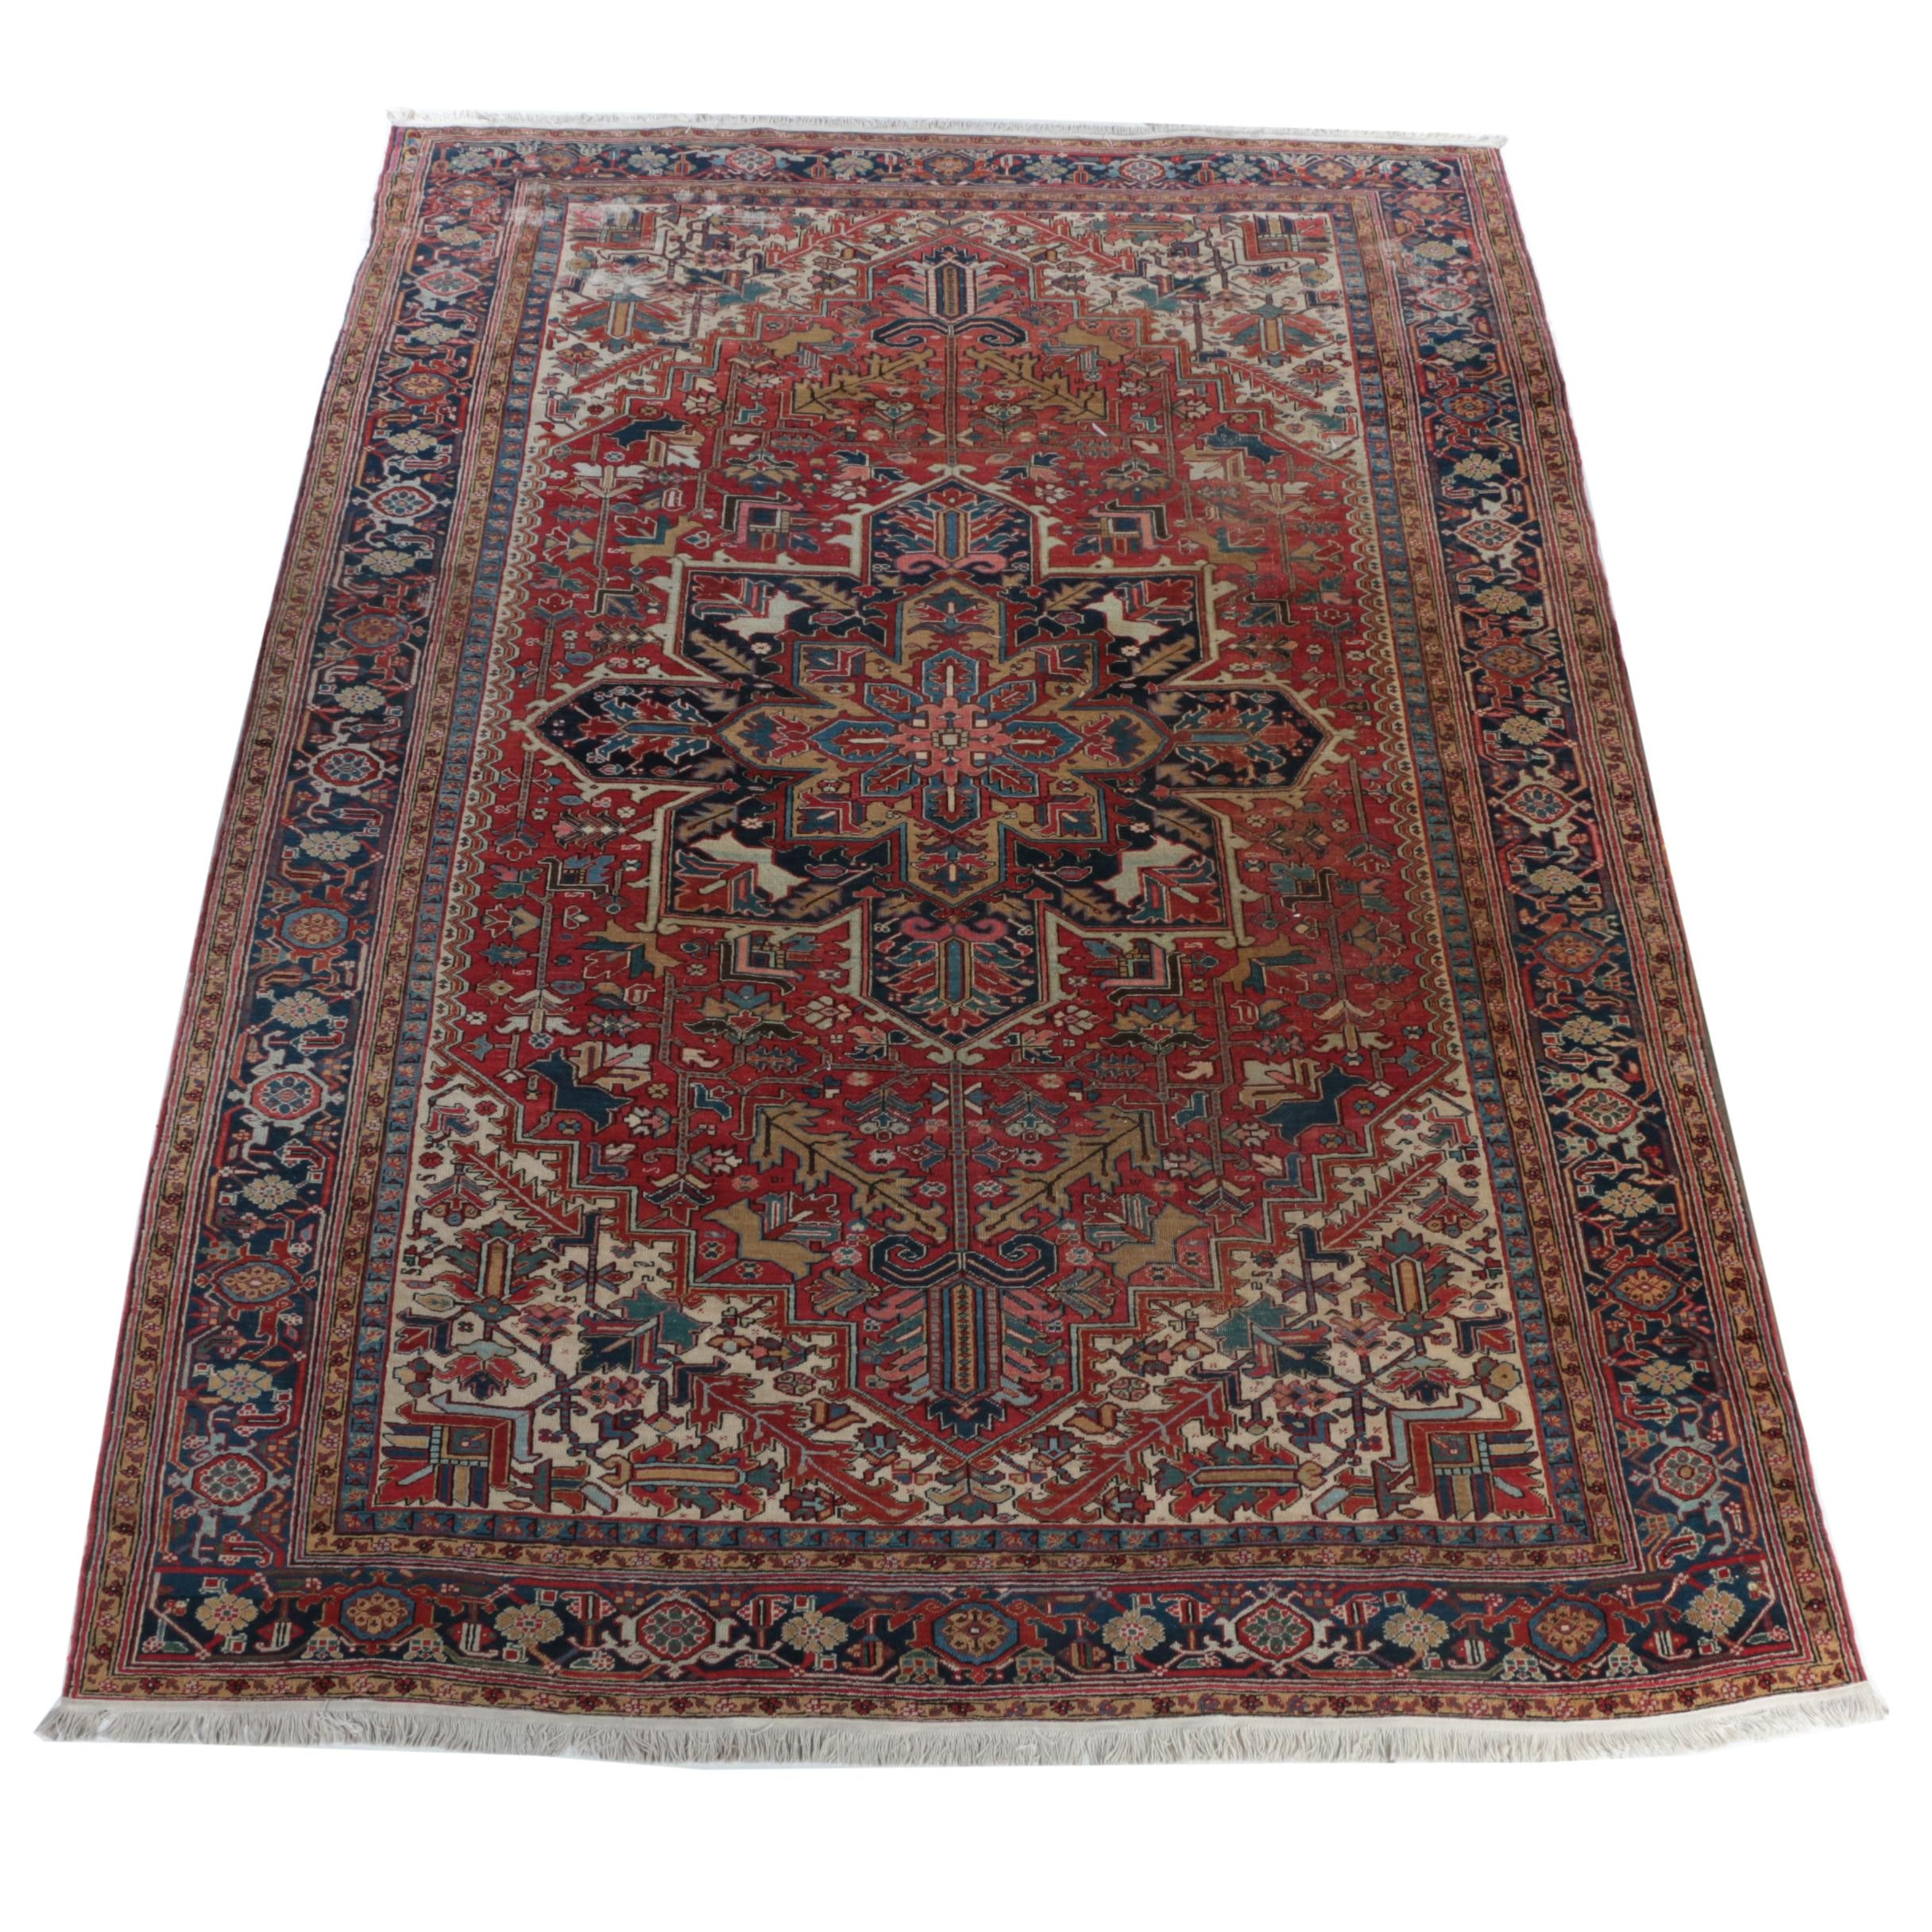 Vintage Hand-Knotted Persian Heriz Wool Room Size Rug